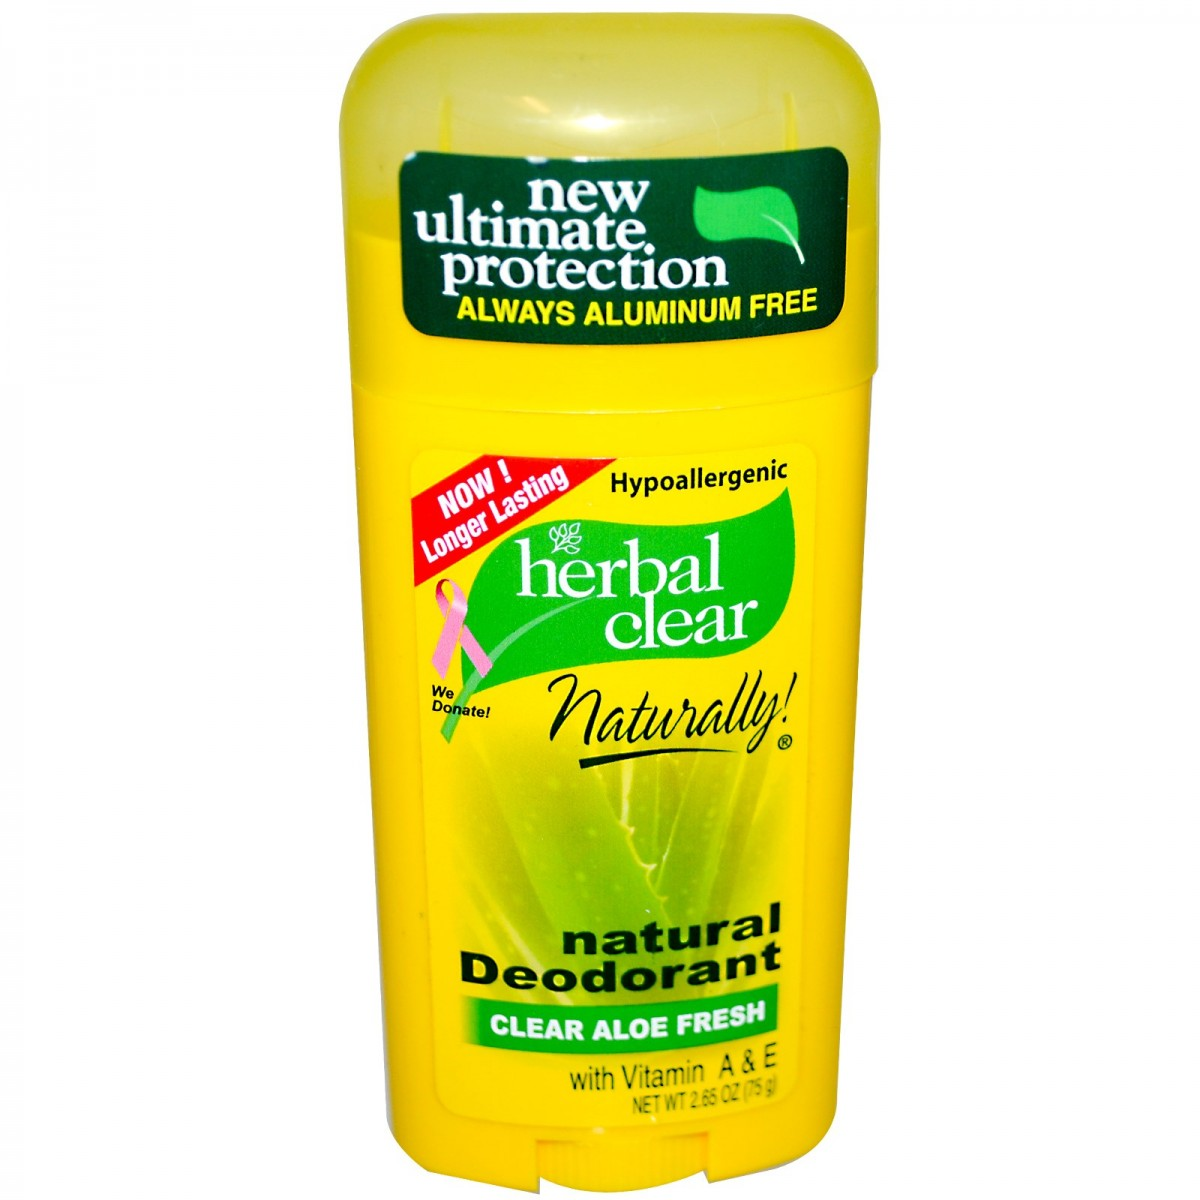 21st Century Health Care, Herbal Clear, Natural Deodorant с iherb